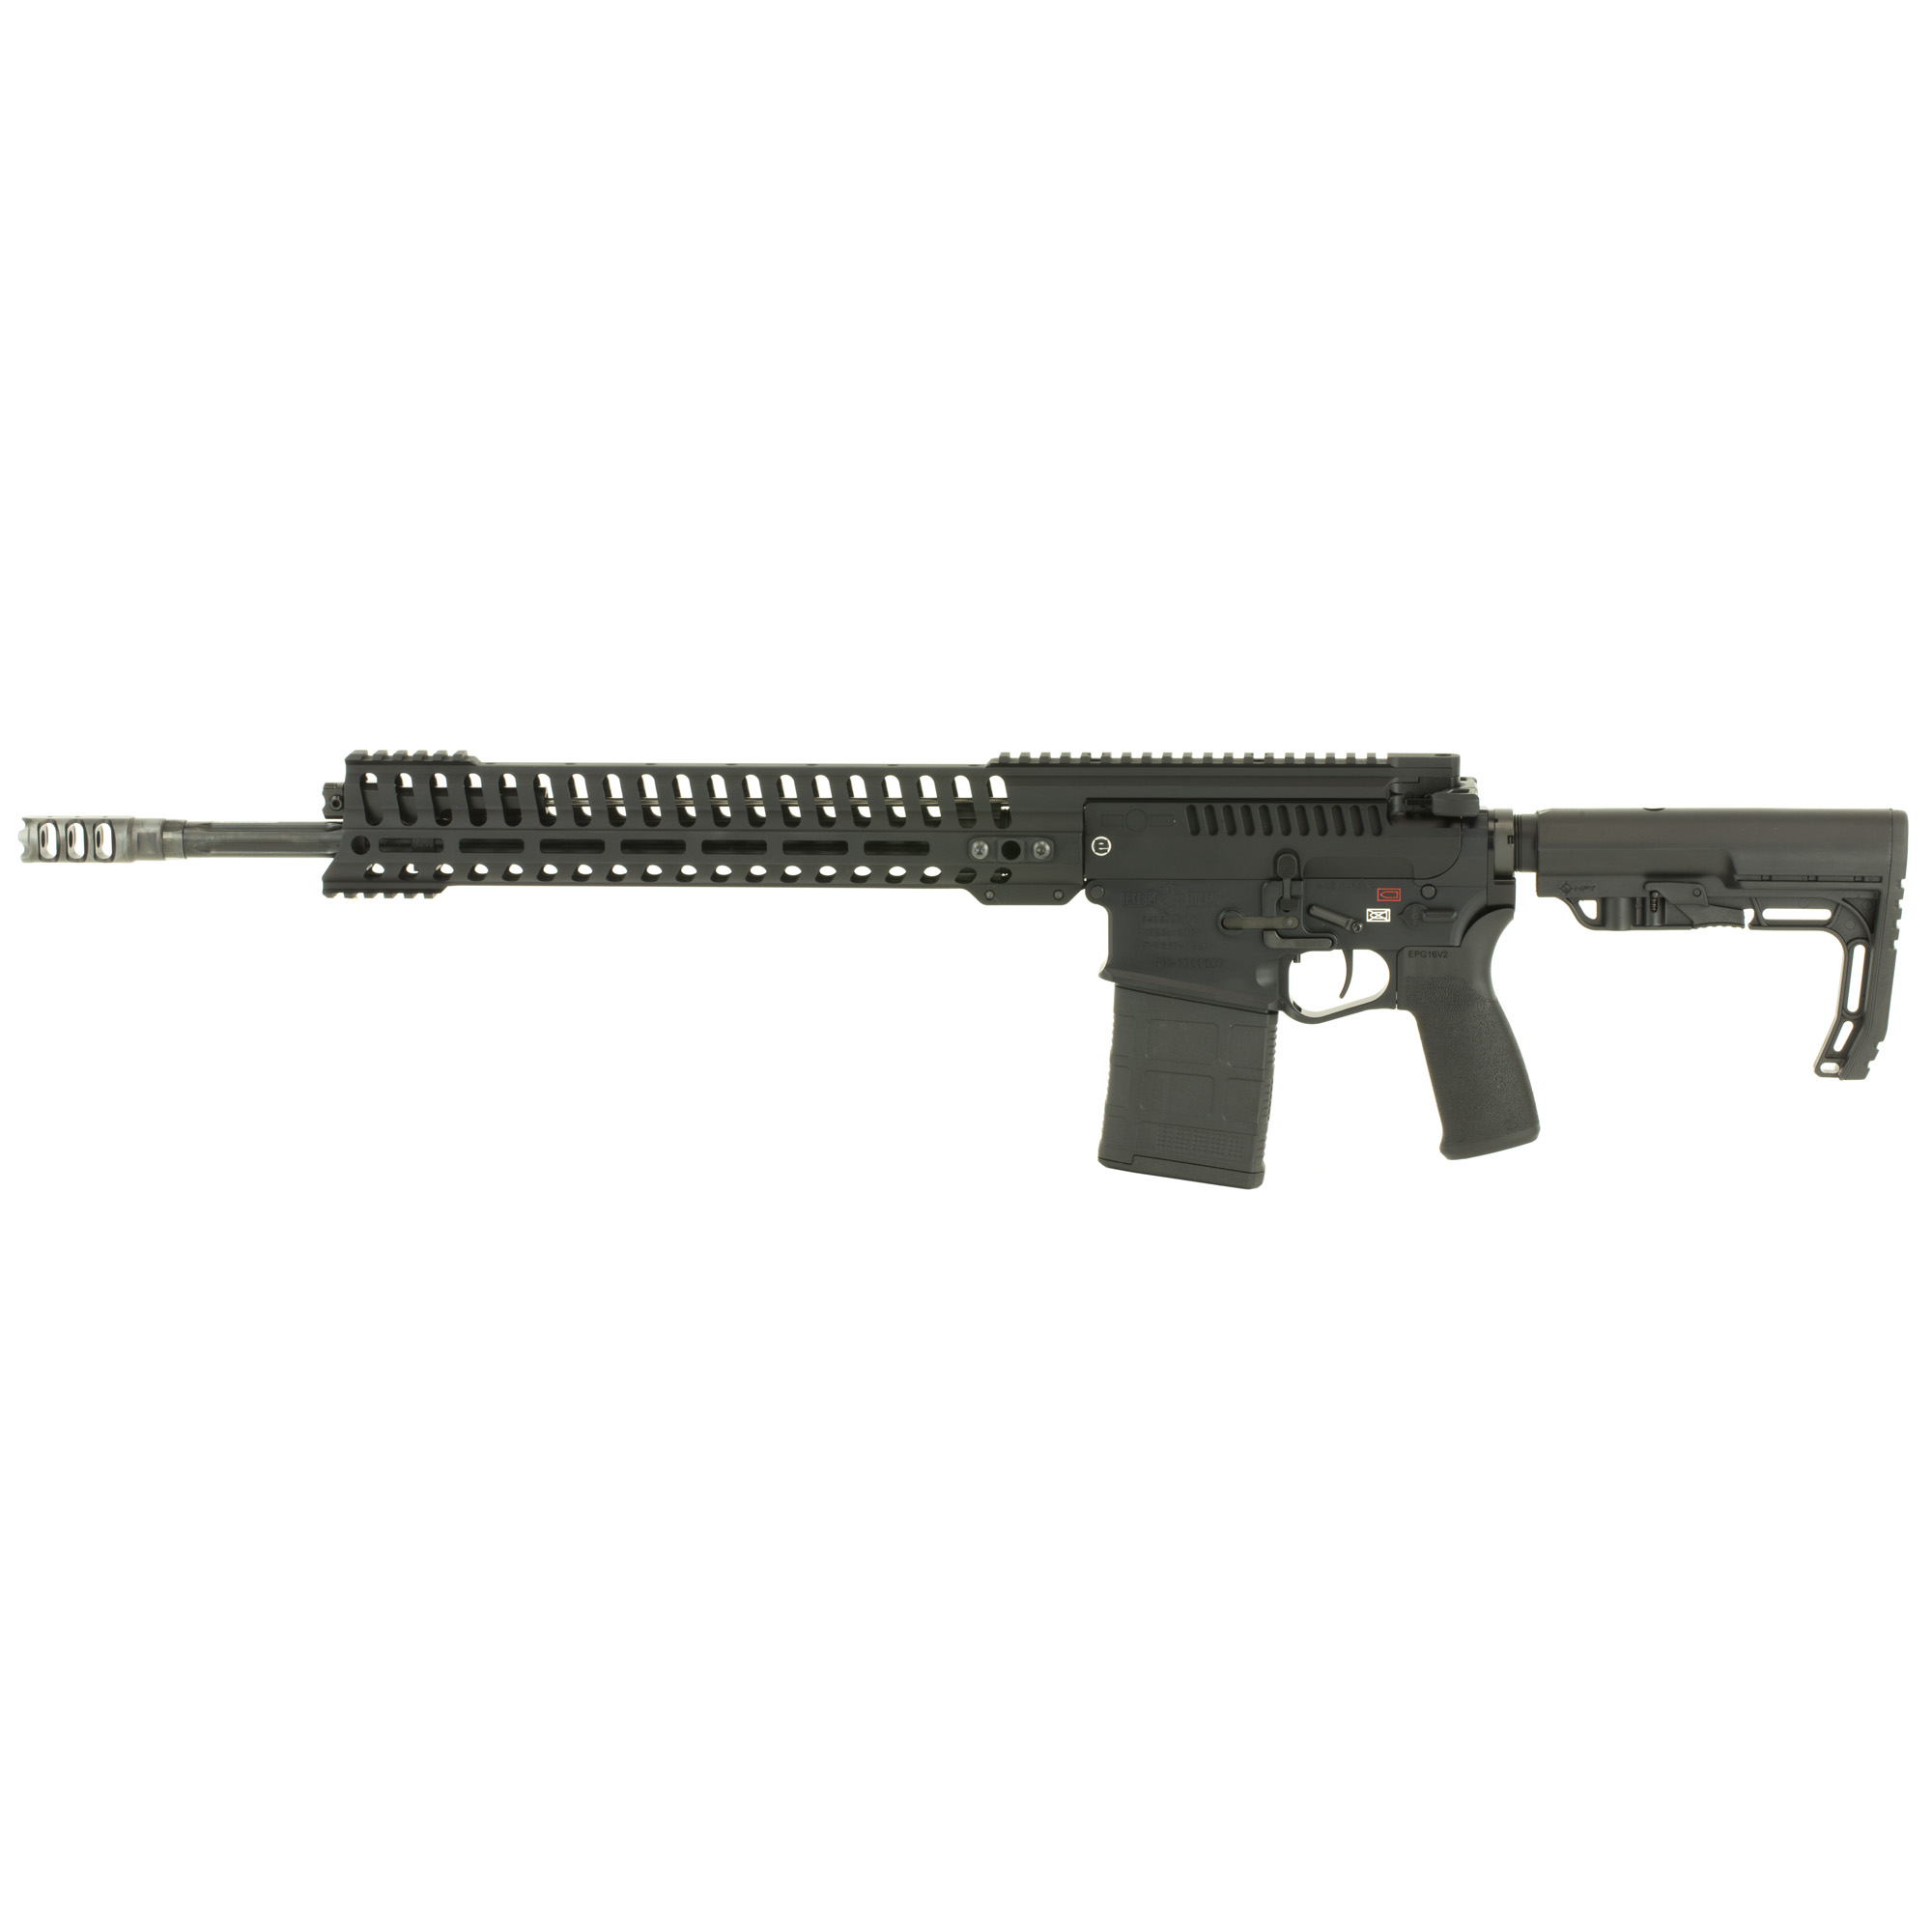 "The Revolution(TM) is POF's new .308 rifle that handles like a 5.56. The Revolution features many 5.56 parts; such as charging handle"" bolt carrier"" cam pin"" buffer"" heat sink barrel nut"" handguard"" and 5-position gas piston operating system. The barrel extension"" bolt assembly"" upper"" and lower receiver are the exact same size as those on an AR15."